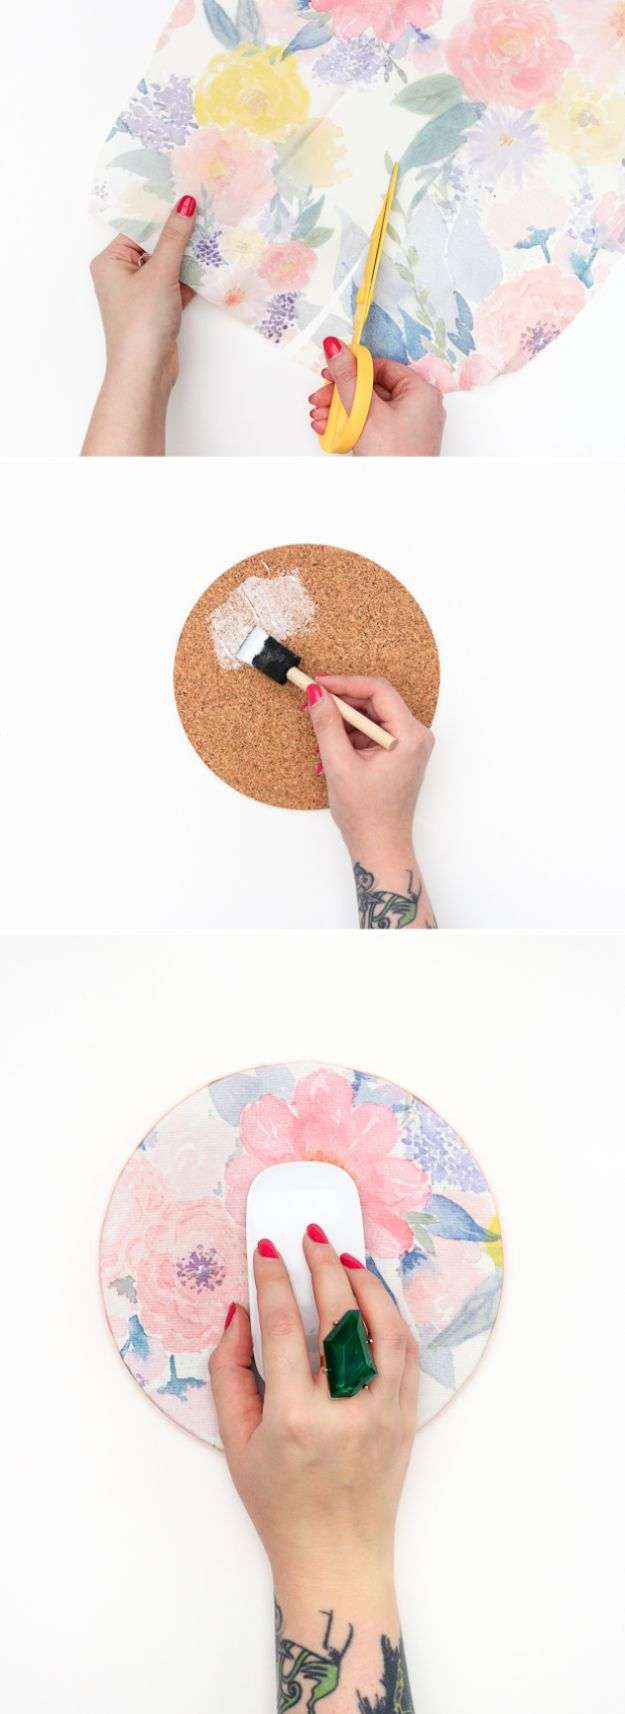 Easy Crafts for Teens - DIY Floral Mouse Pad - Cheap and Easy DIY Projects for Teenagers - Learn Basic Craft Techniques and Tutorials for Learning The Basics for Do It Yourself Projects and Fun Crafts - Easy Step by Step Tutorials for Making Pom Poms, Using a Glue Gun, Painting How To and More - Cool Ideas for Teens, Teenagers and Adults - Cheap Arts and Crafts Ideas and Tips http://diyprojectsforteens.com/diy-skills-tutorials